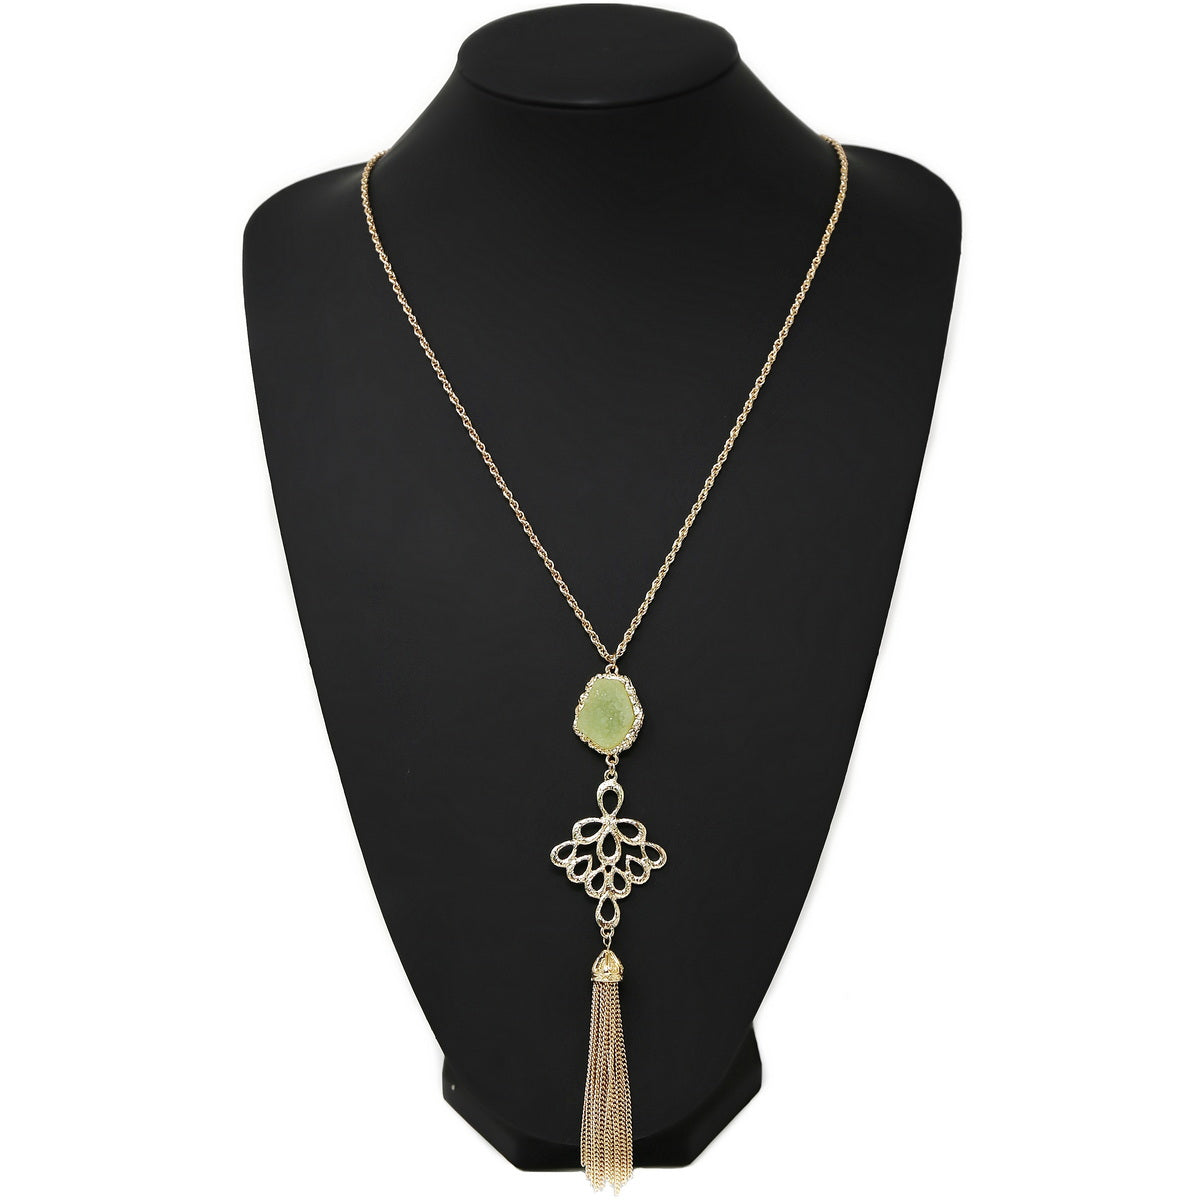 Druzy Stone With Chain Tassel Pendant Long Necklace